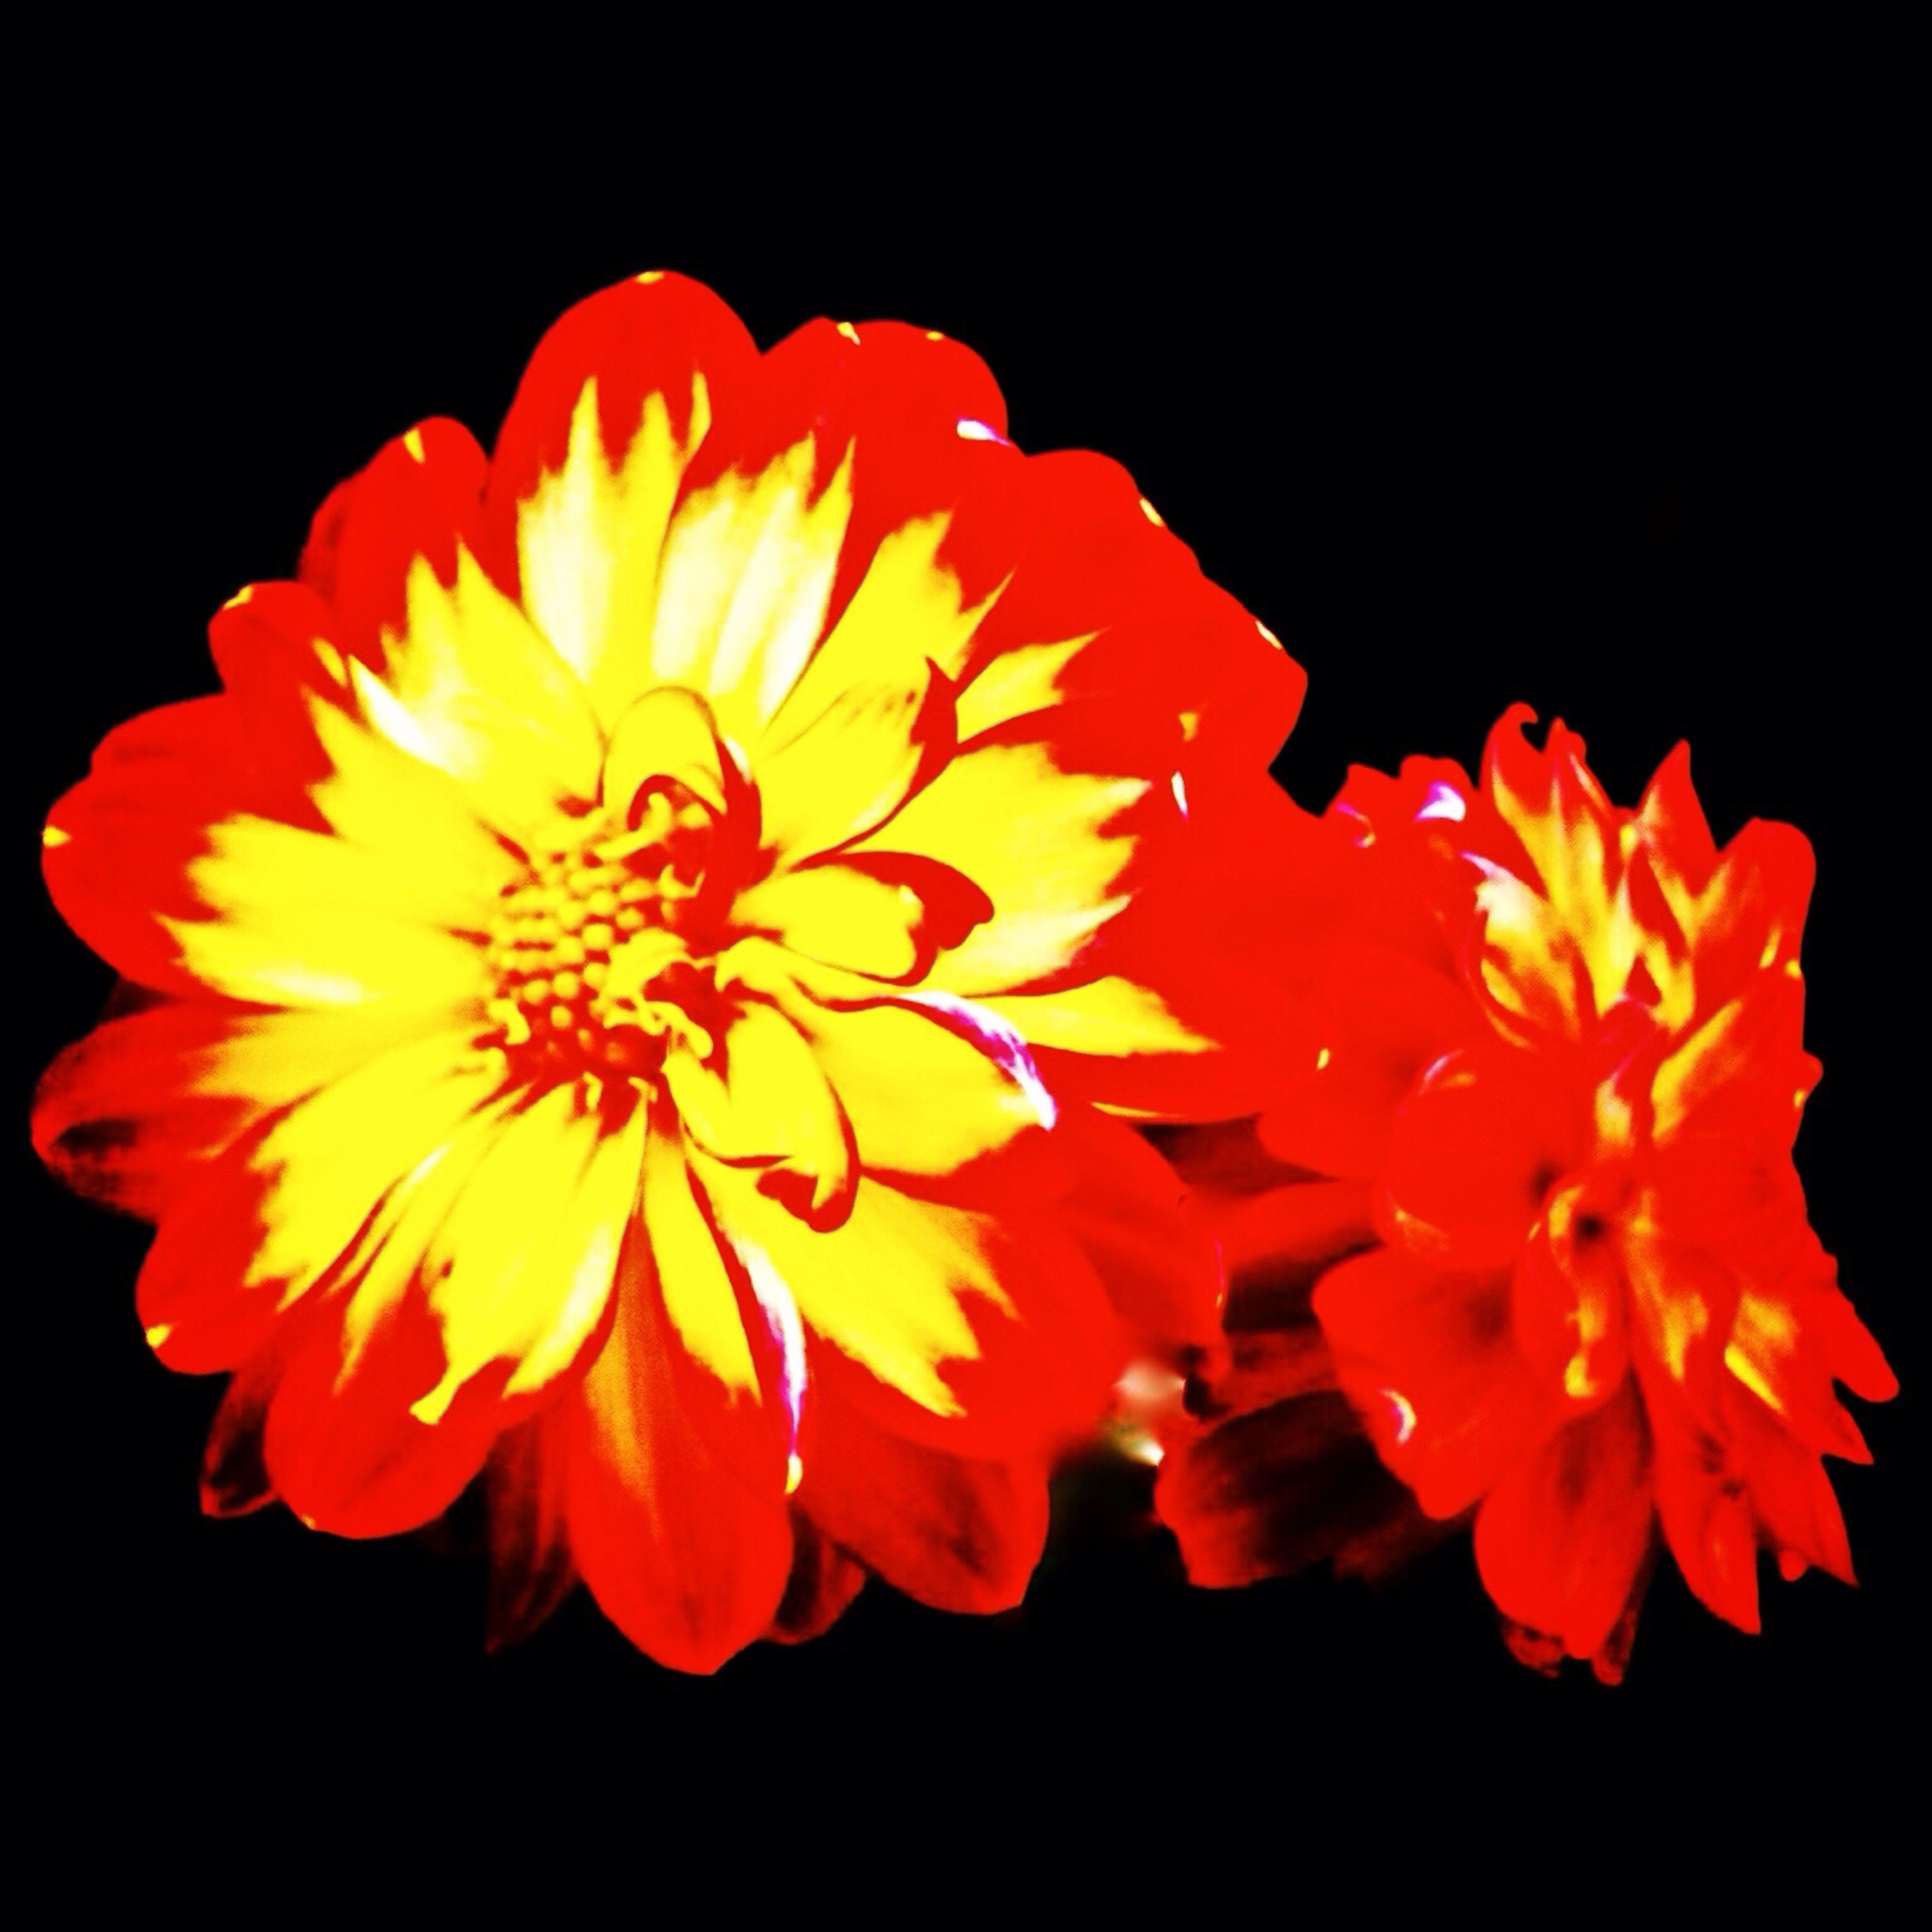 flower, petal, freshness, flower head, black background, fragility, studio shot, beauty in nature, orange color, close-up, nature, blooming, yellow, growth, pollen, red, single flower, copy space, in bloom, night